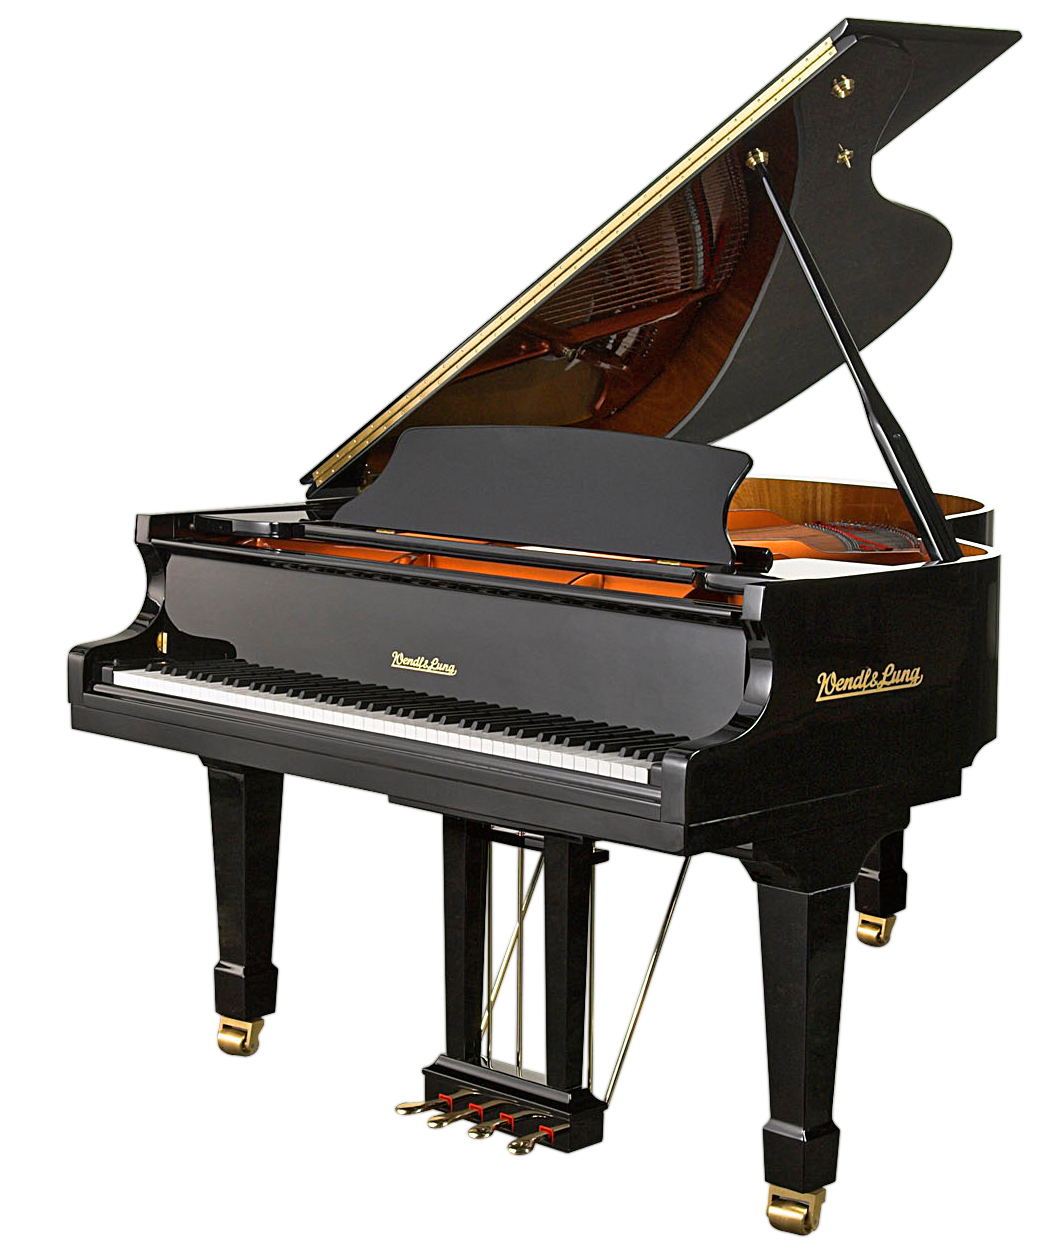 Piano clipart high quality. Png images transparent free